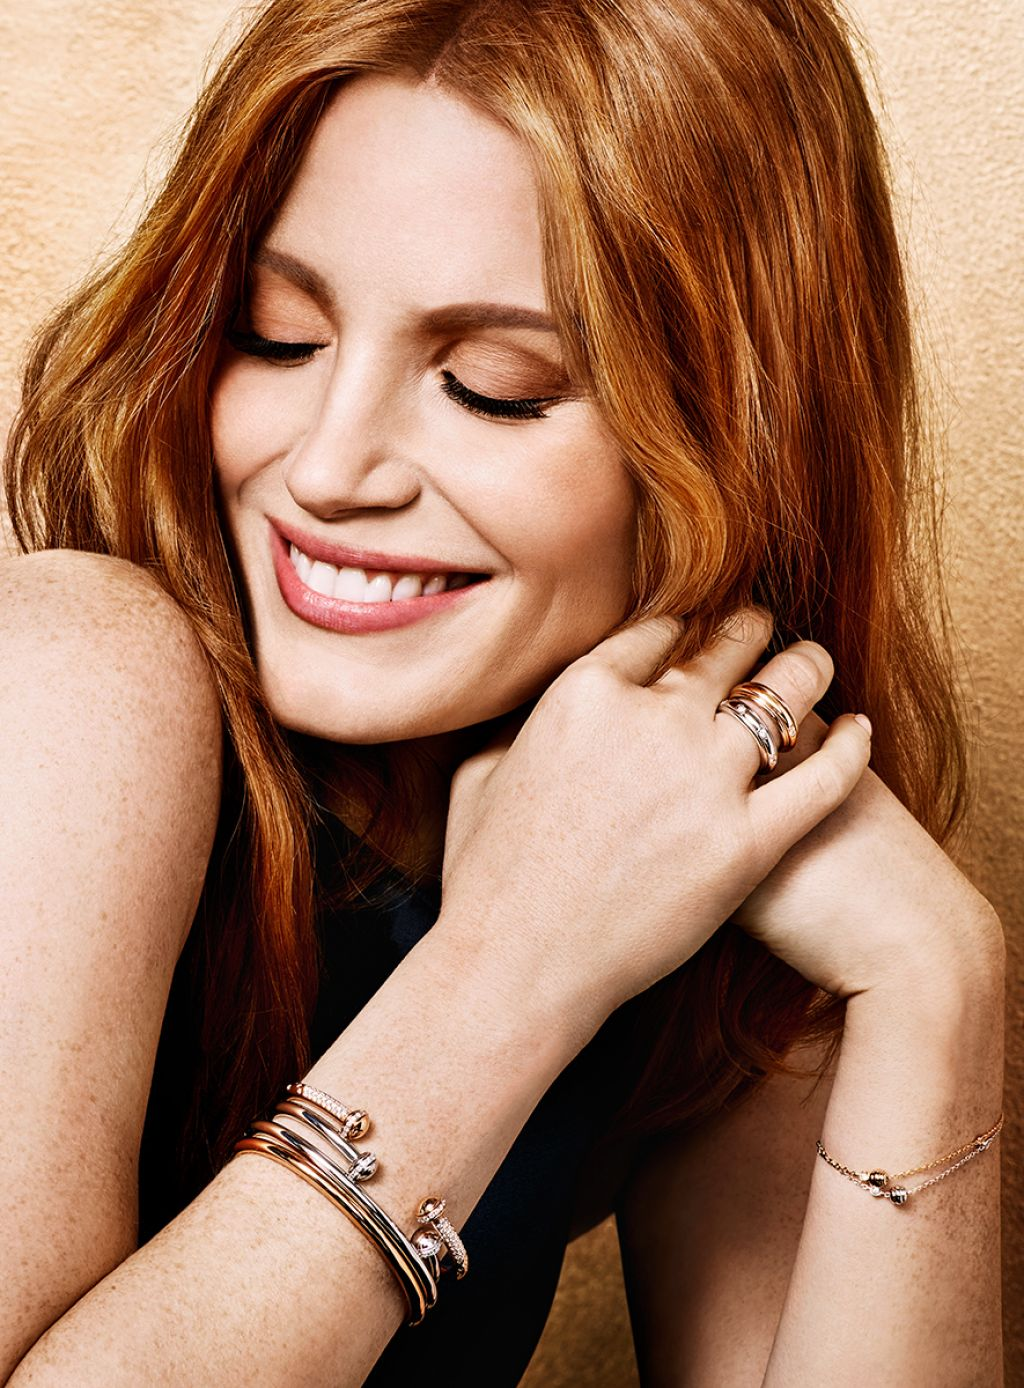 Jessica Chastain - Photo Shoot for Piaget 2016 Ad Campaign Jessica Chastain